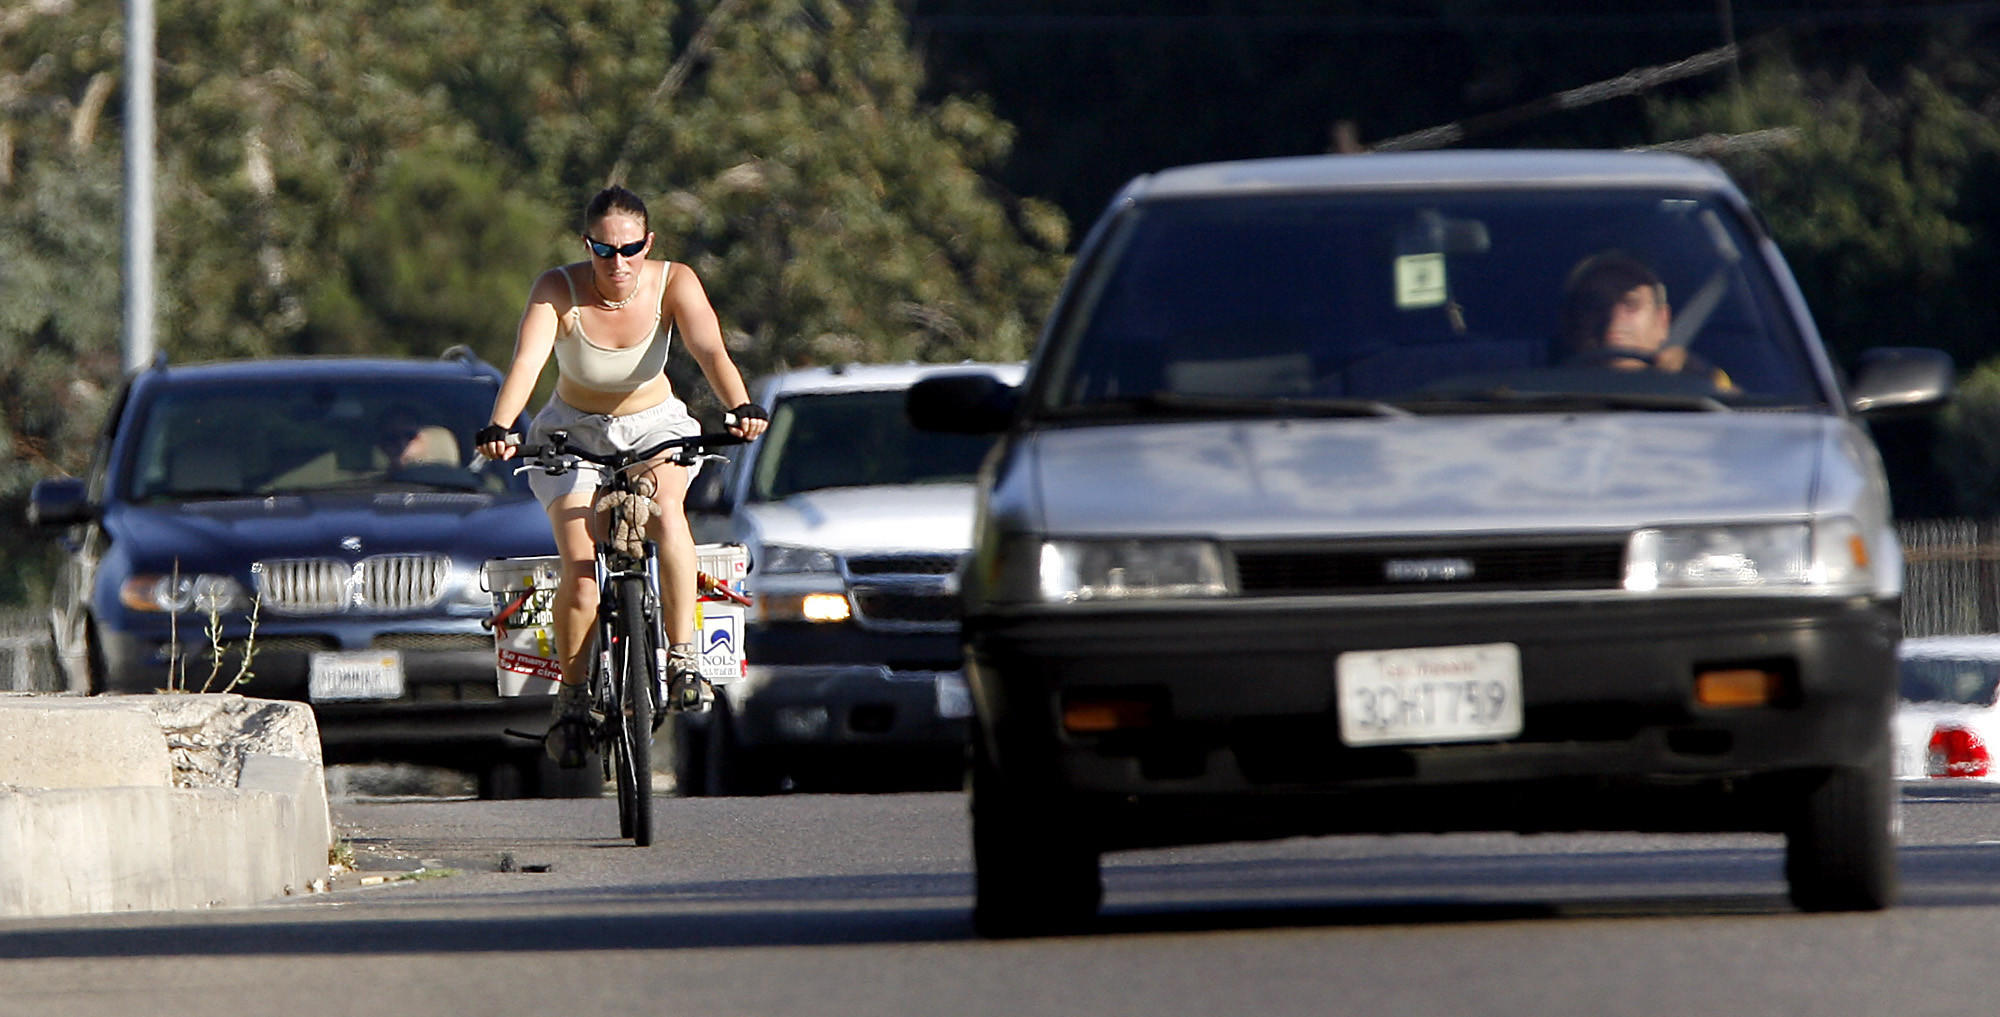 A bicyclist makes her way through traffic near the Glendale/Burbank/Griffith Park border Thursday July 31, 2008.